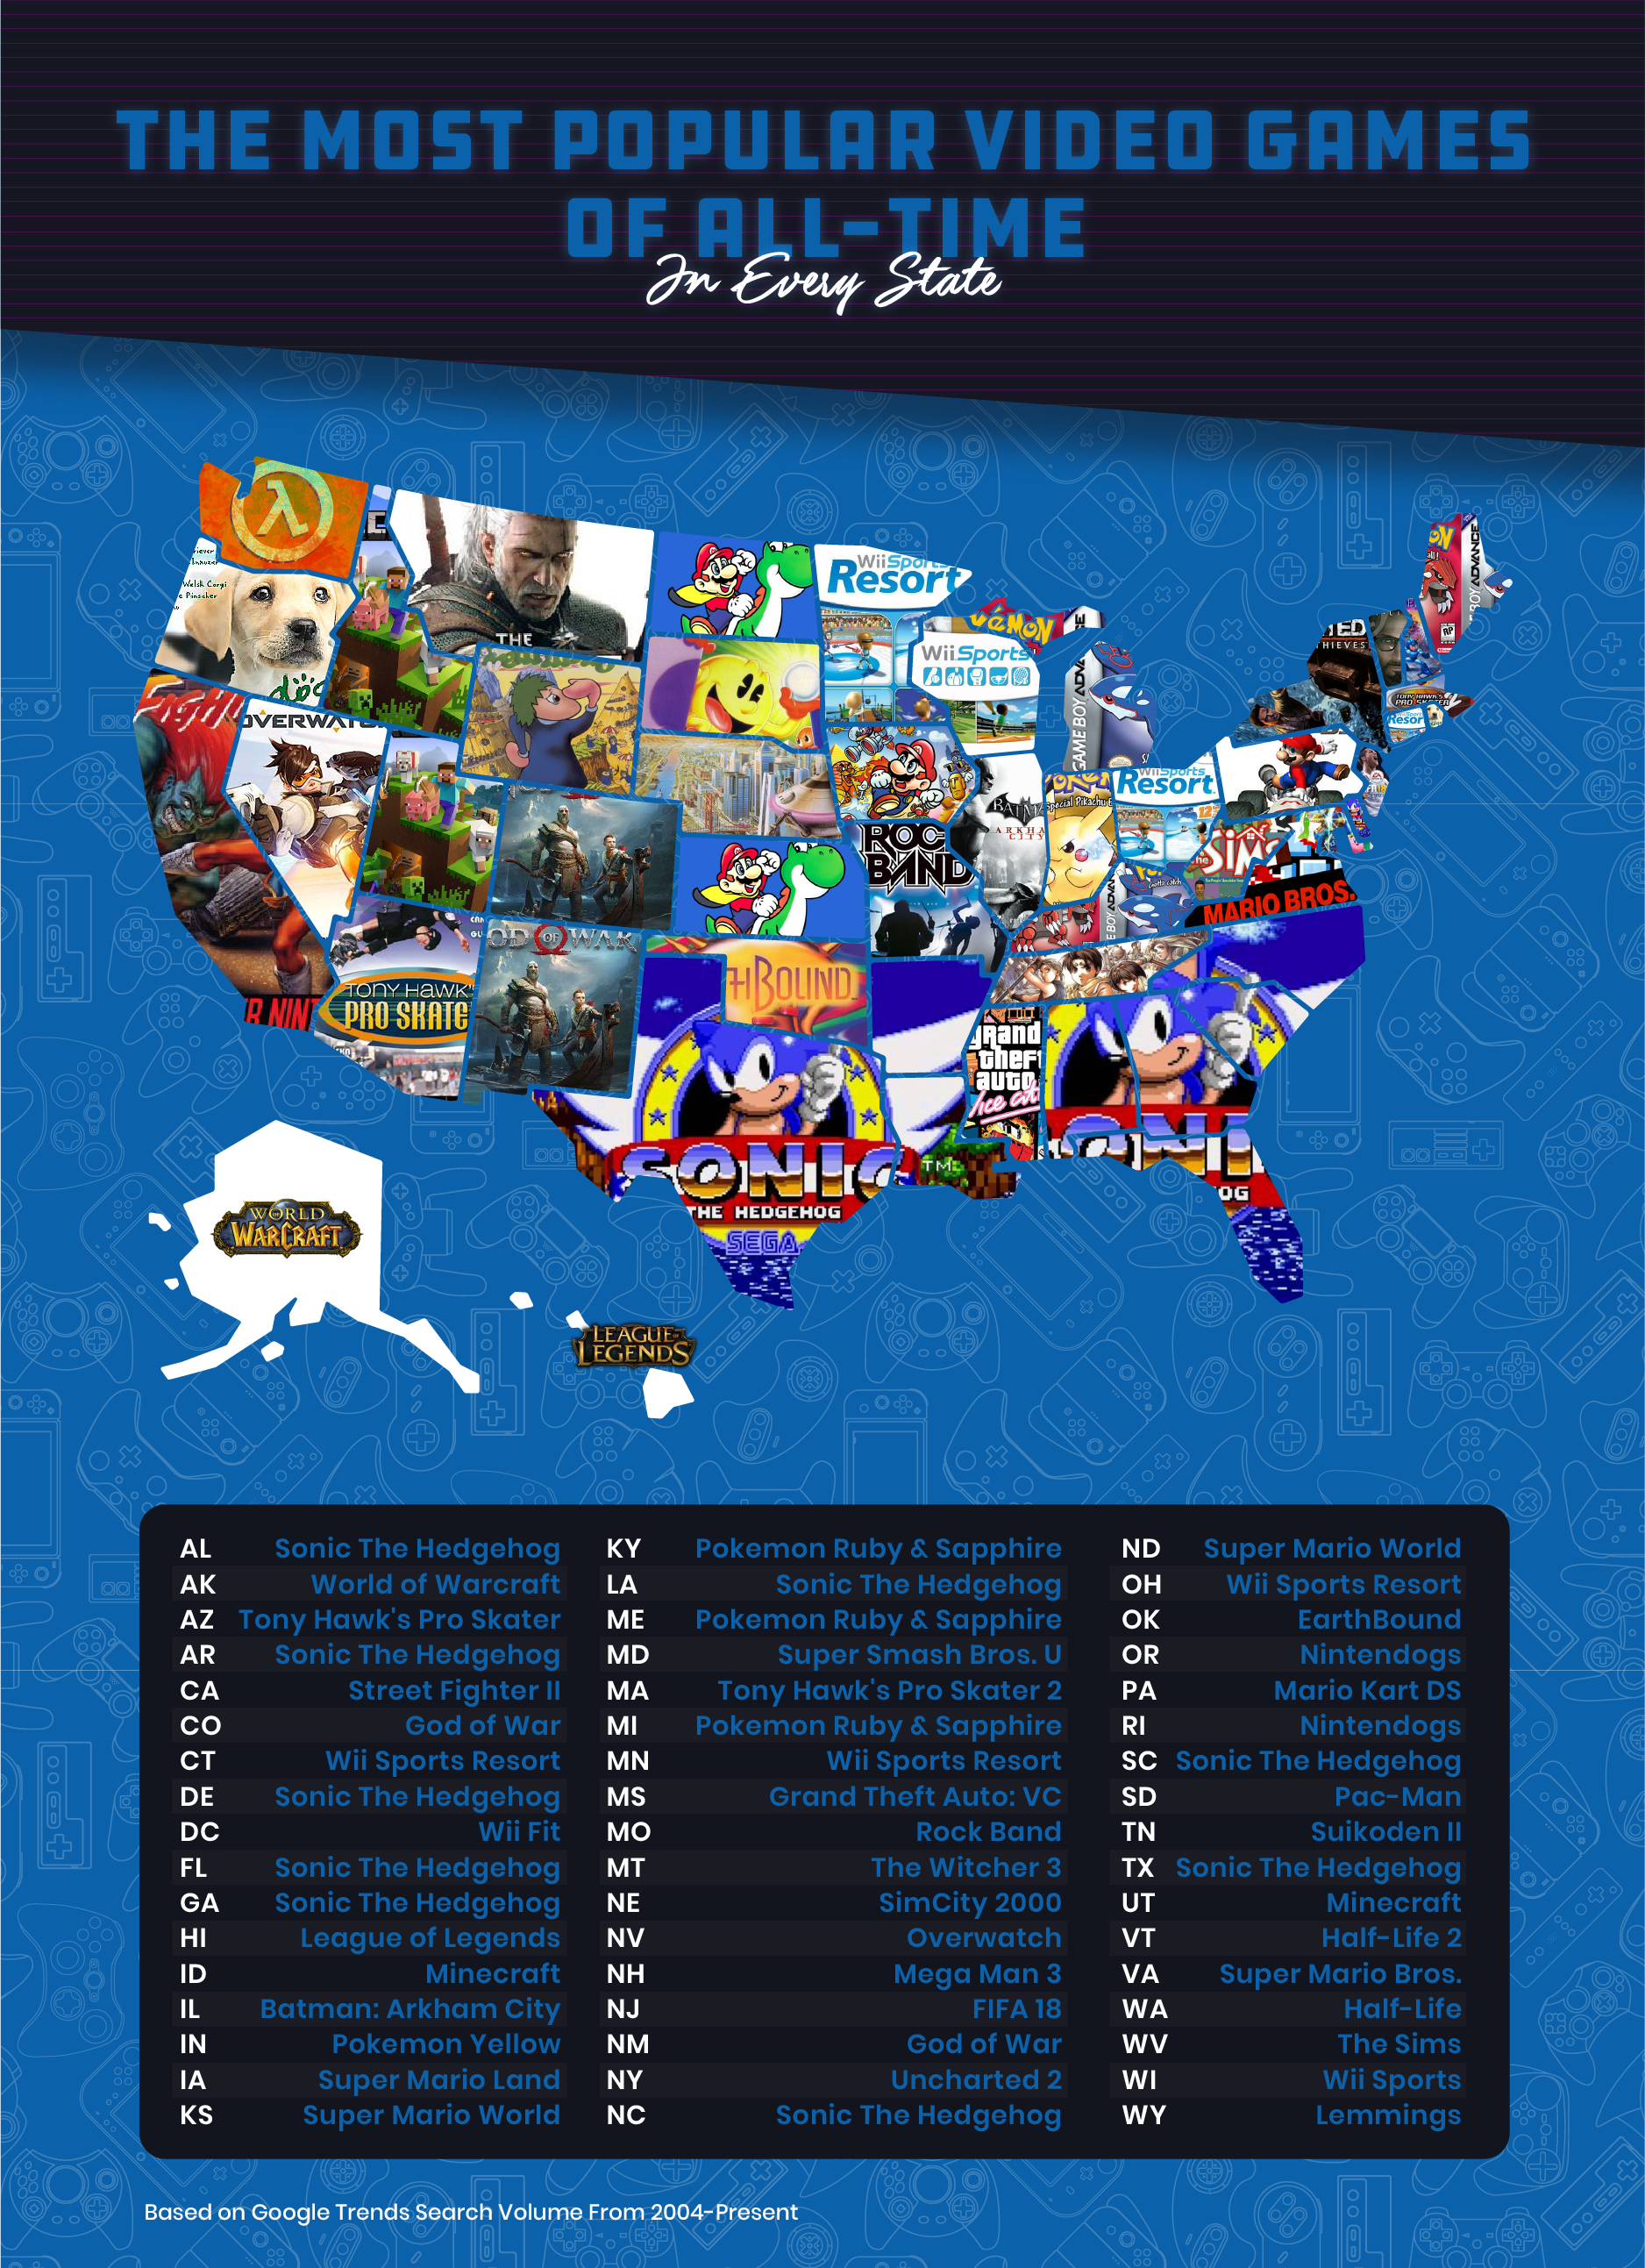 US map showing the most popular video games of all time by state